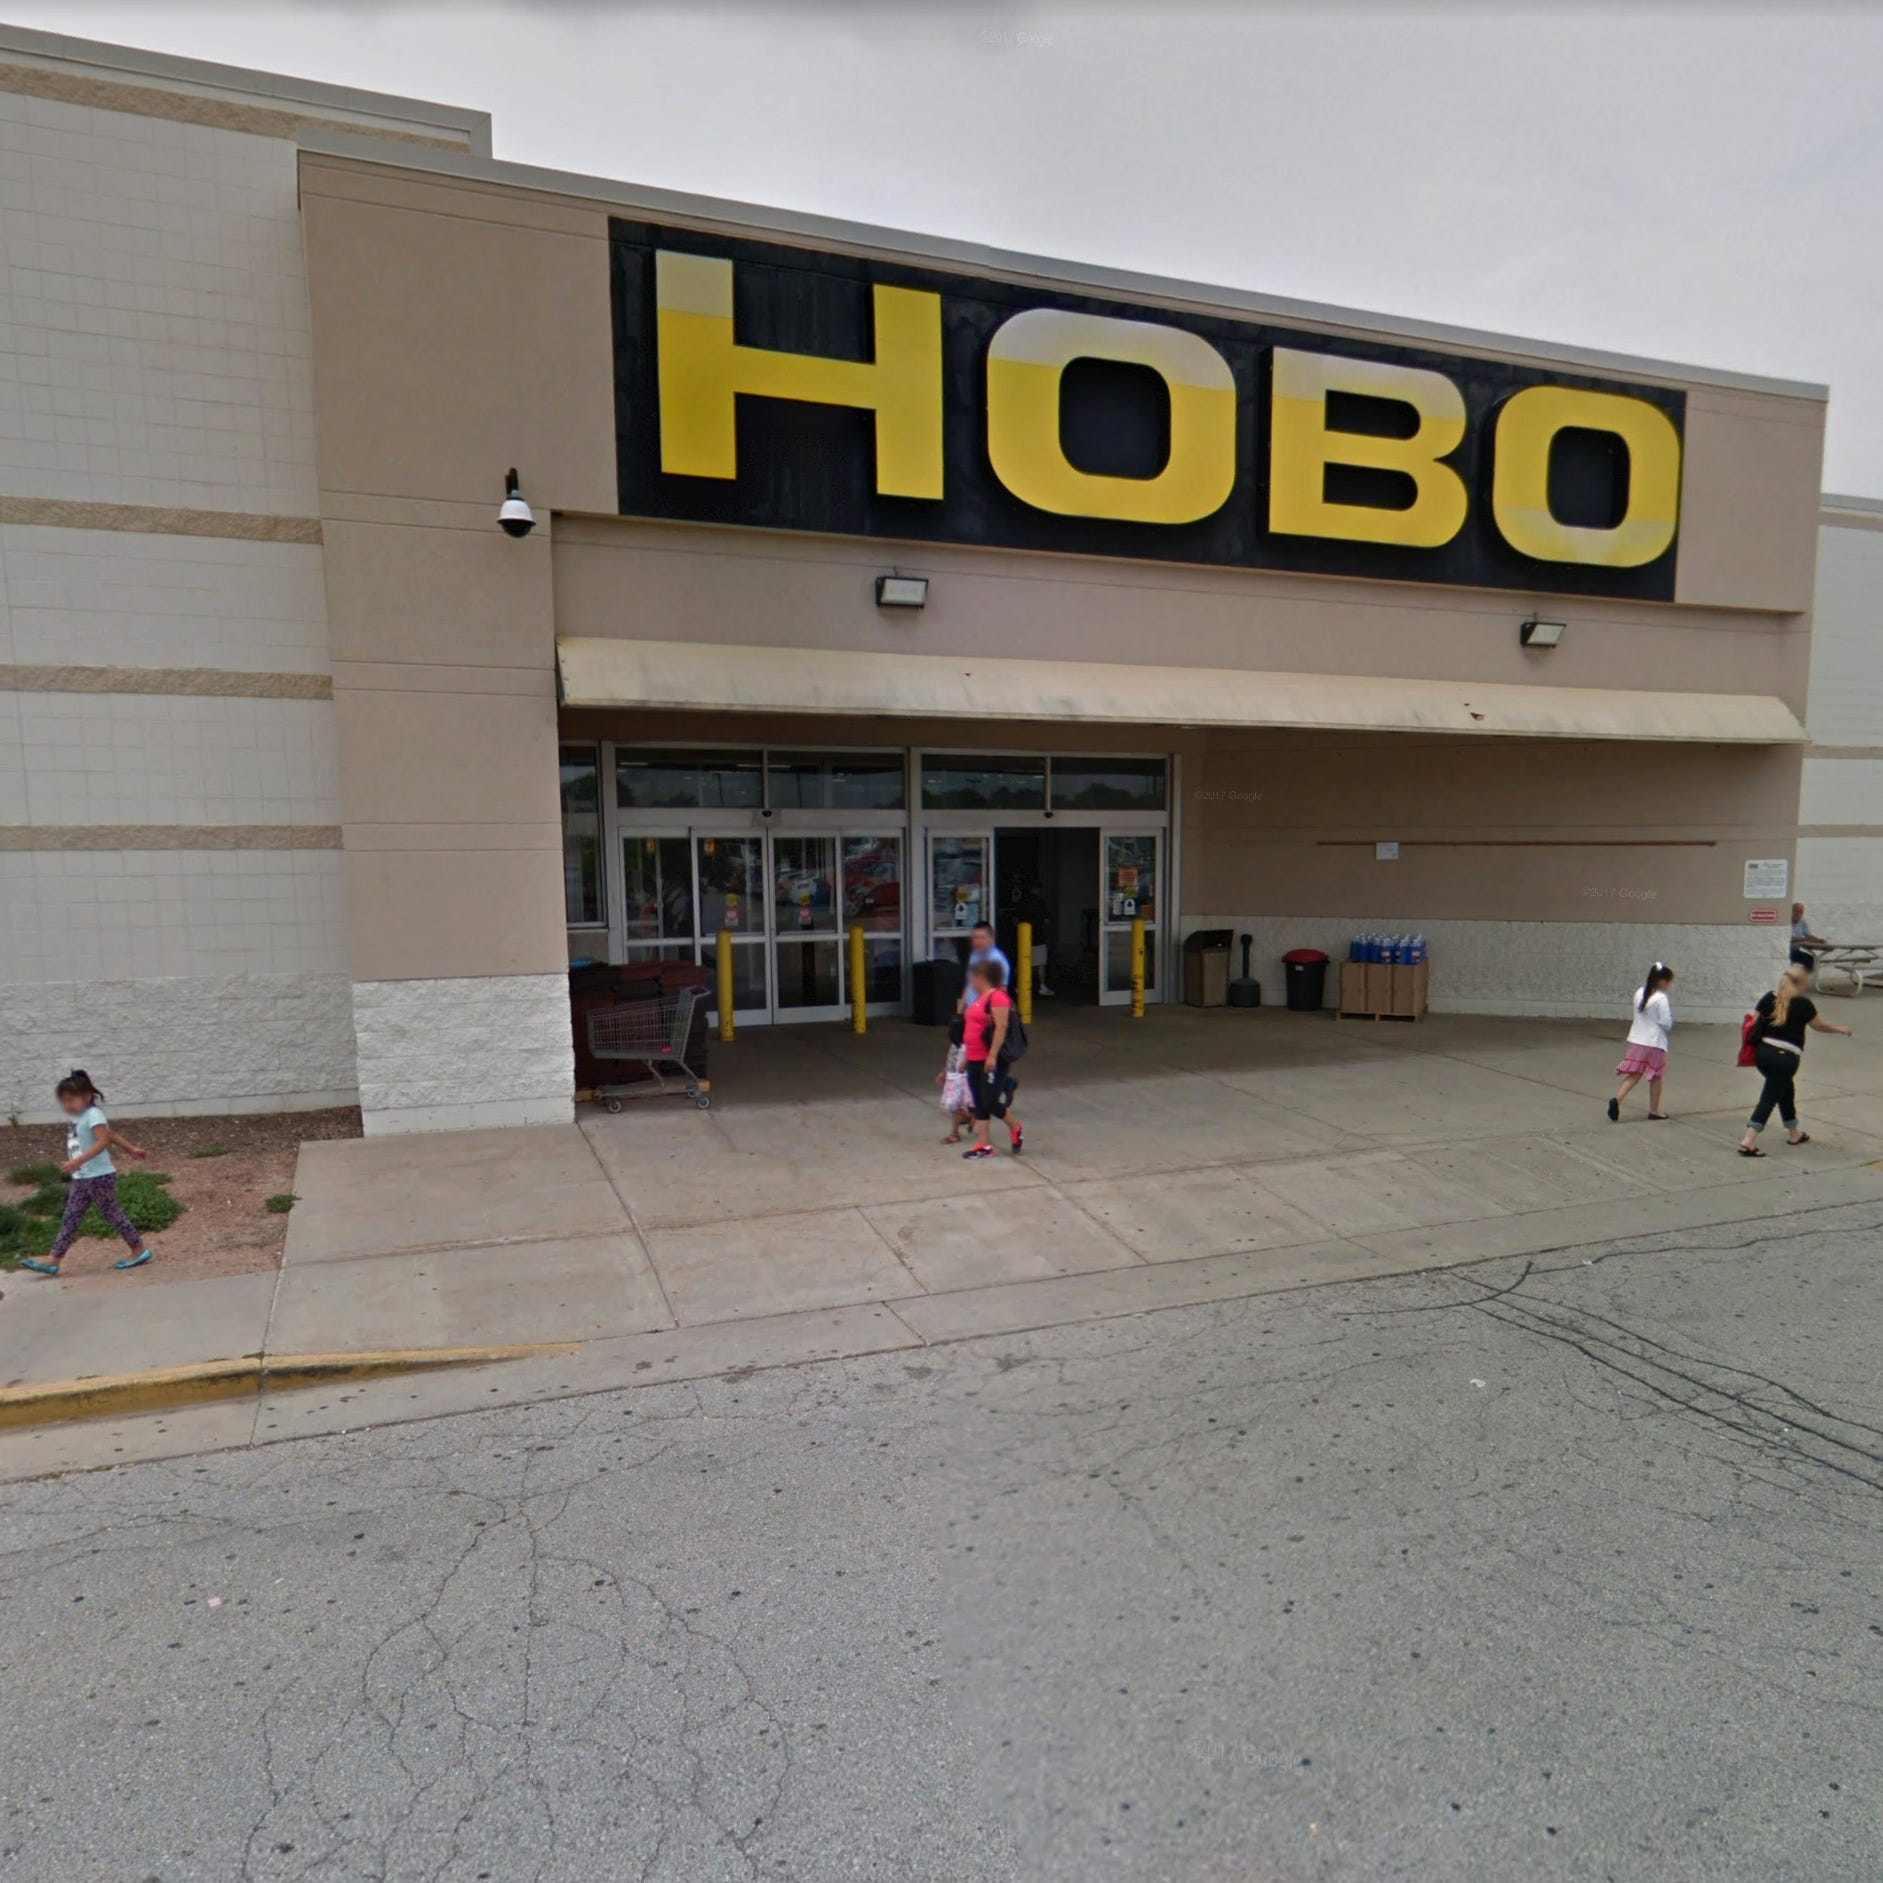 HOBO stores in financial trouble, may close